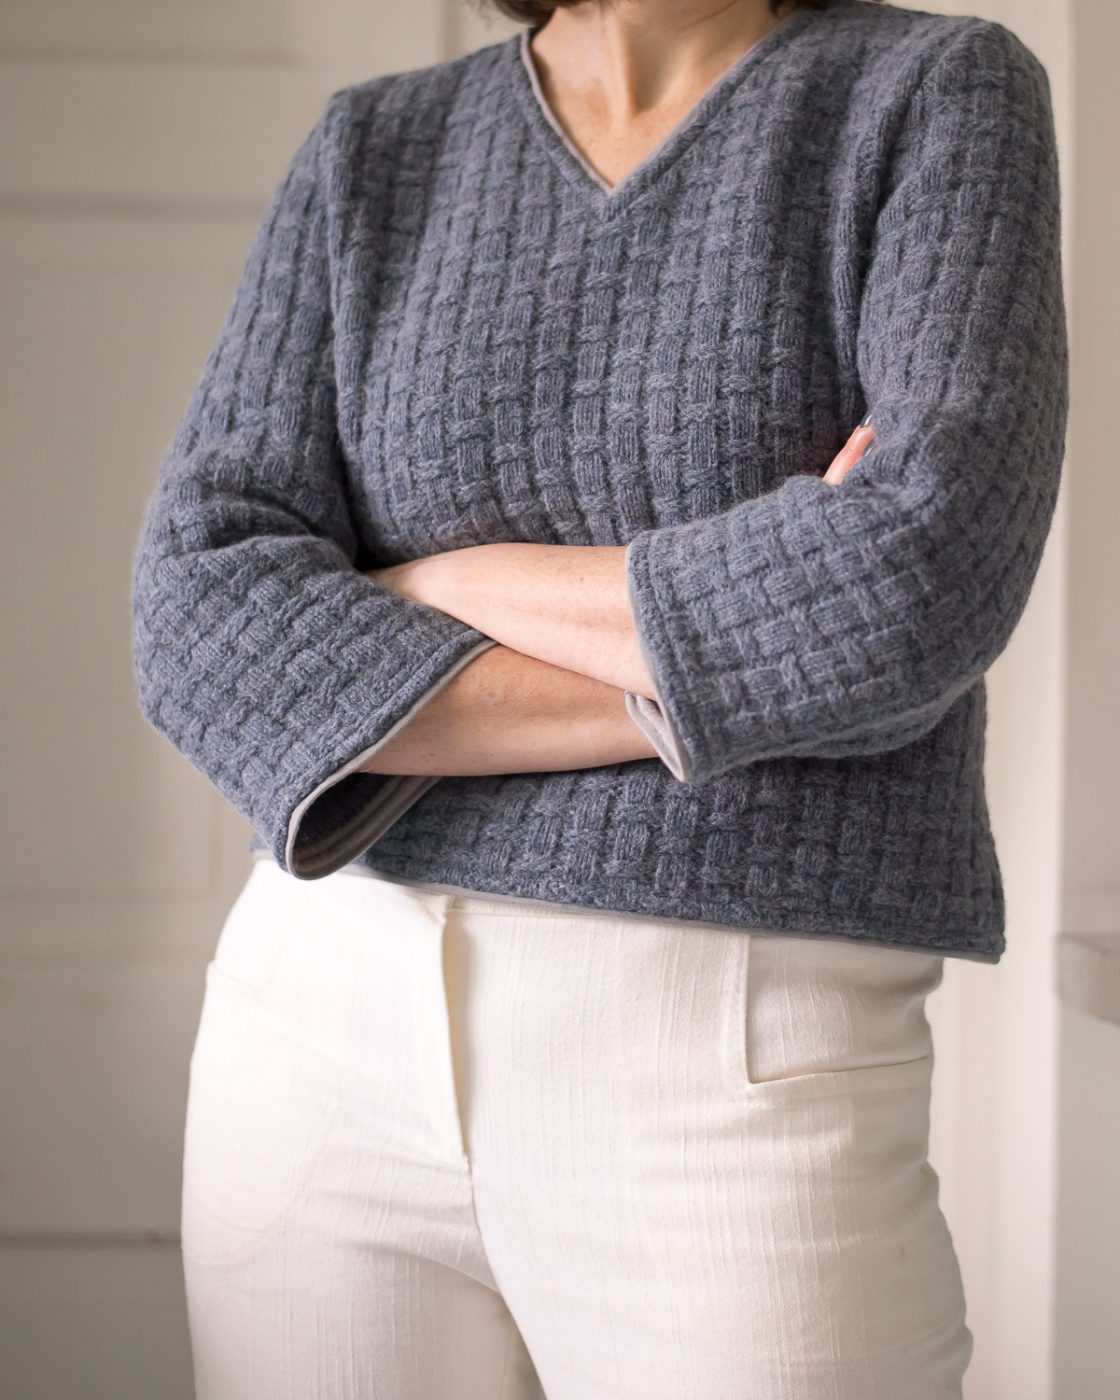 DIY Cropped sweater using McCalls 7445